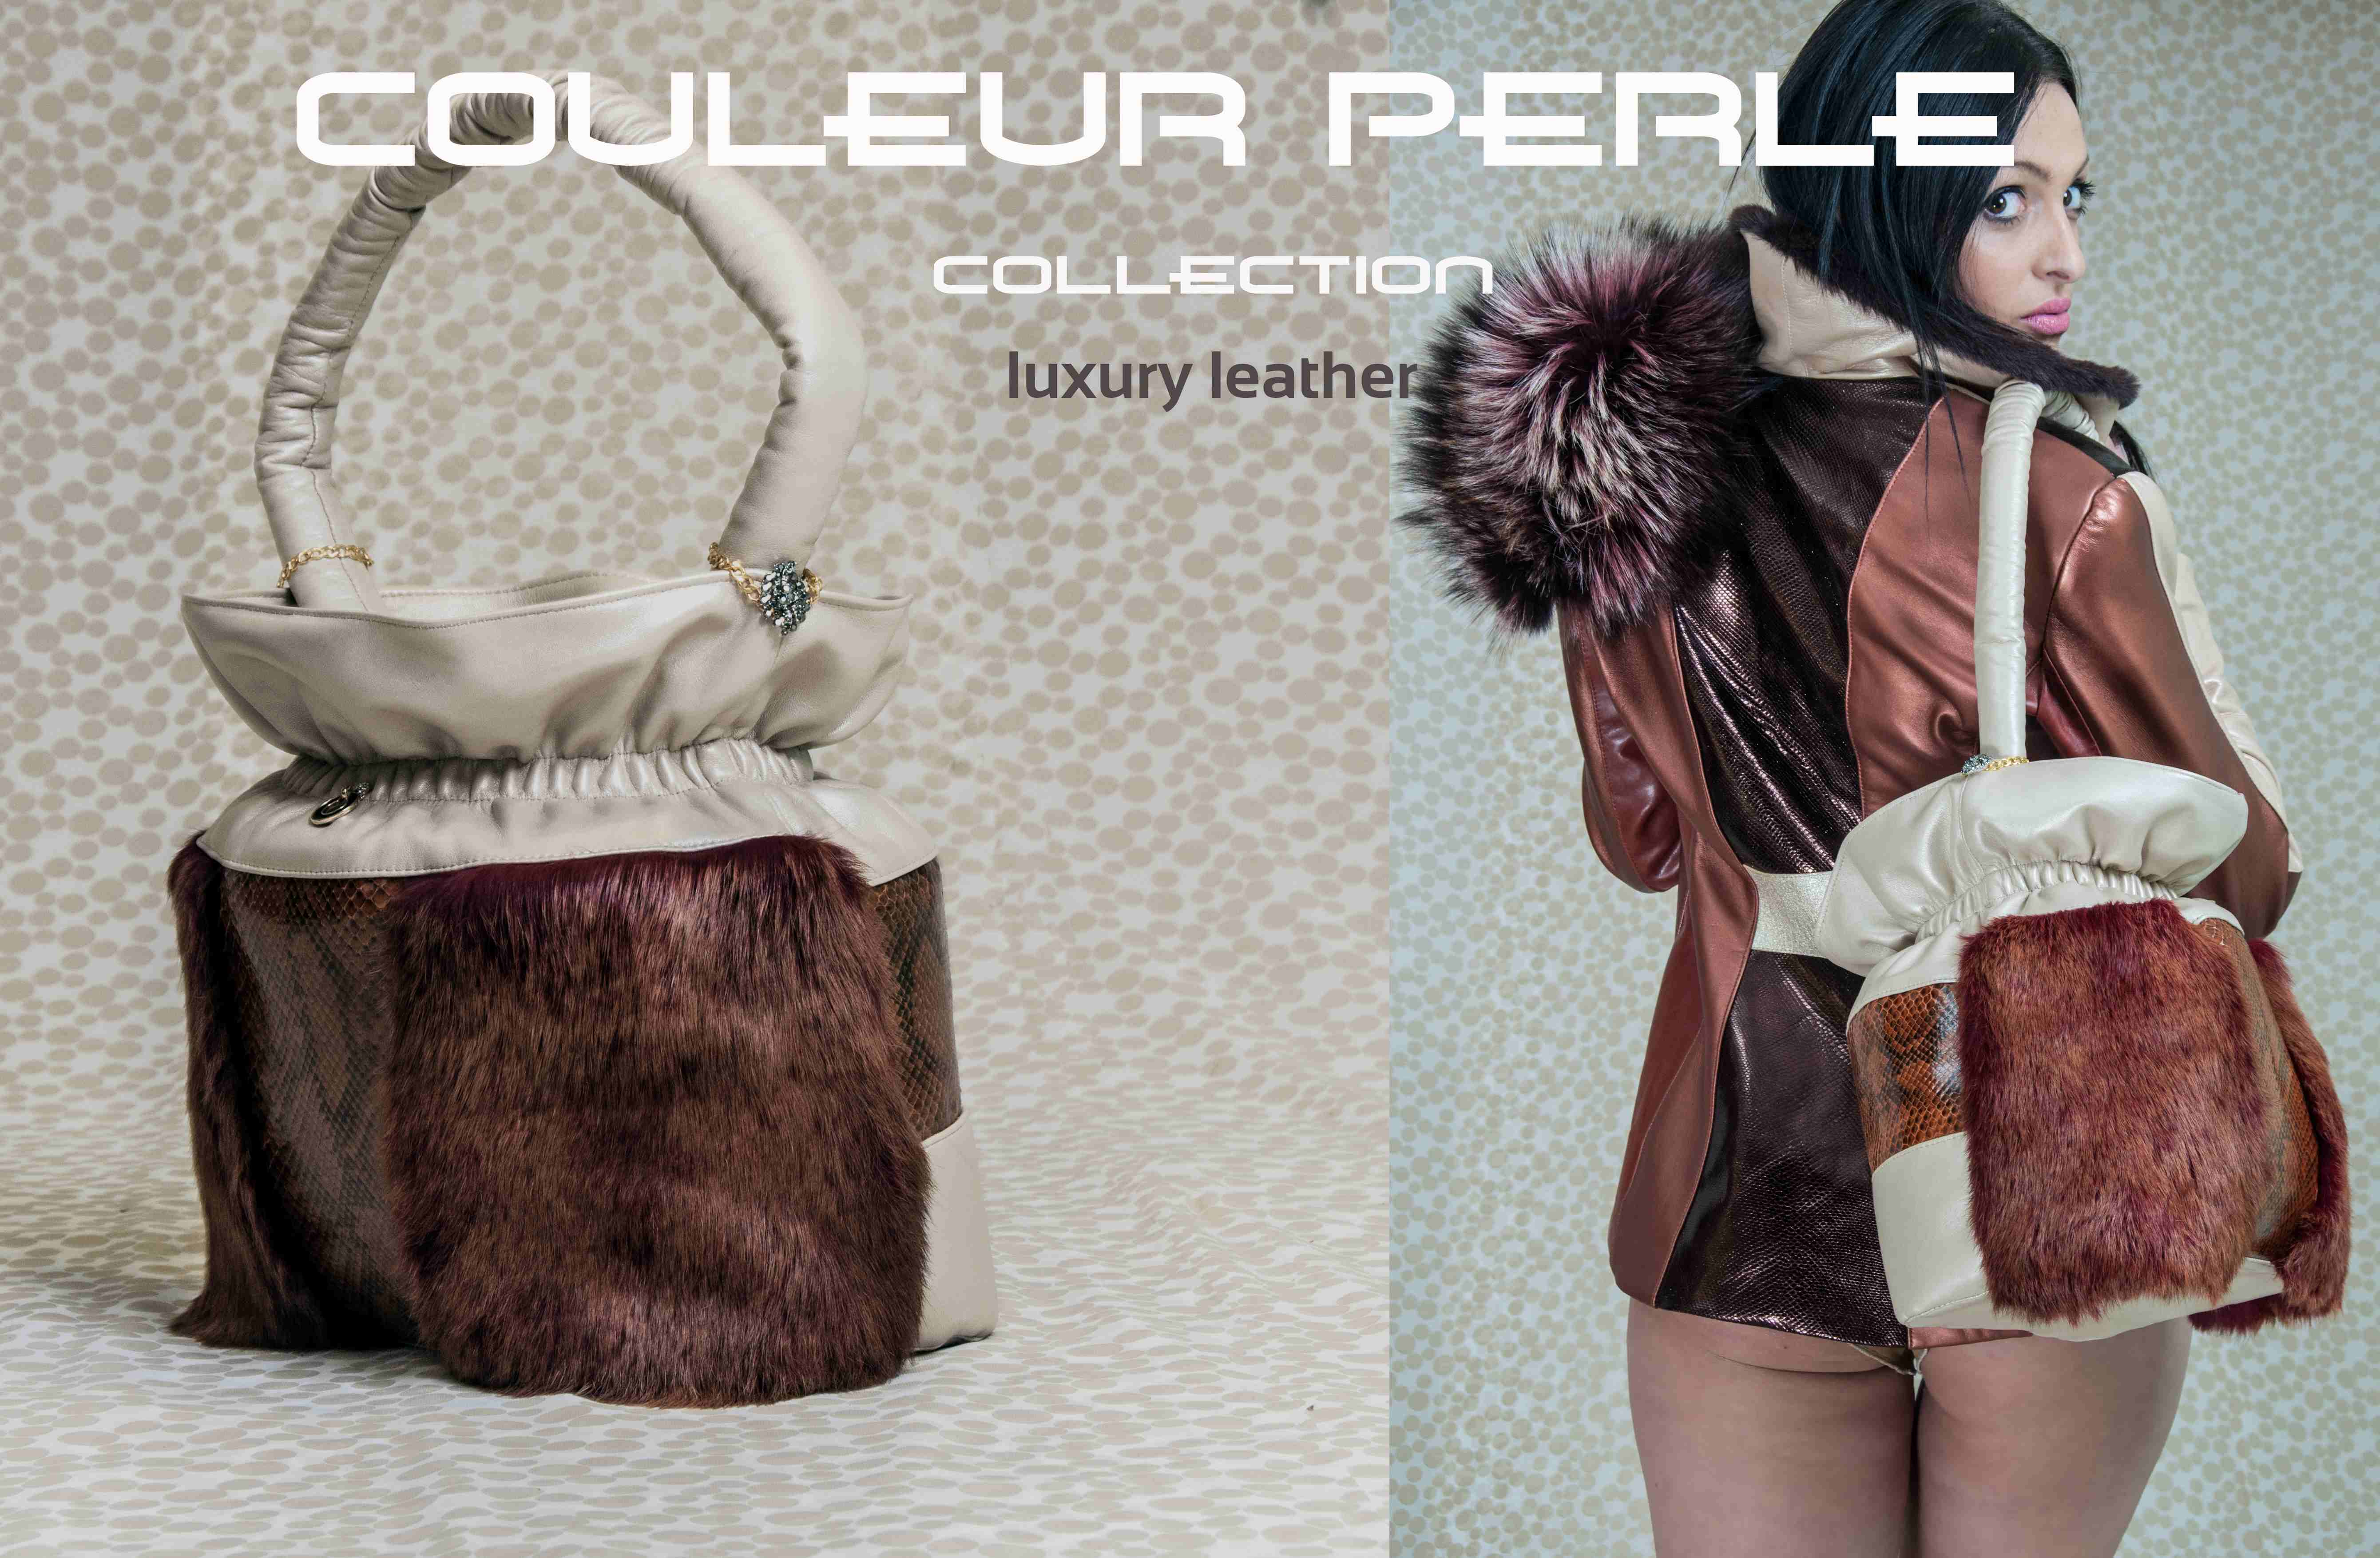 Luxury leather haute couture pret a porter for Haute couture and pret a porter